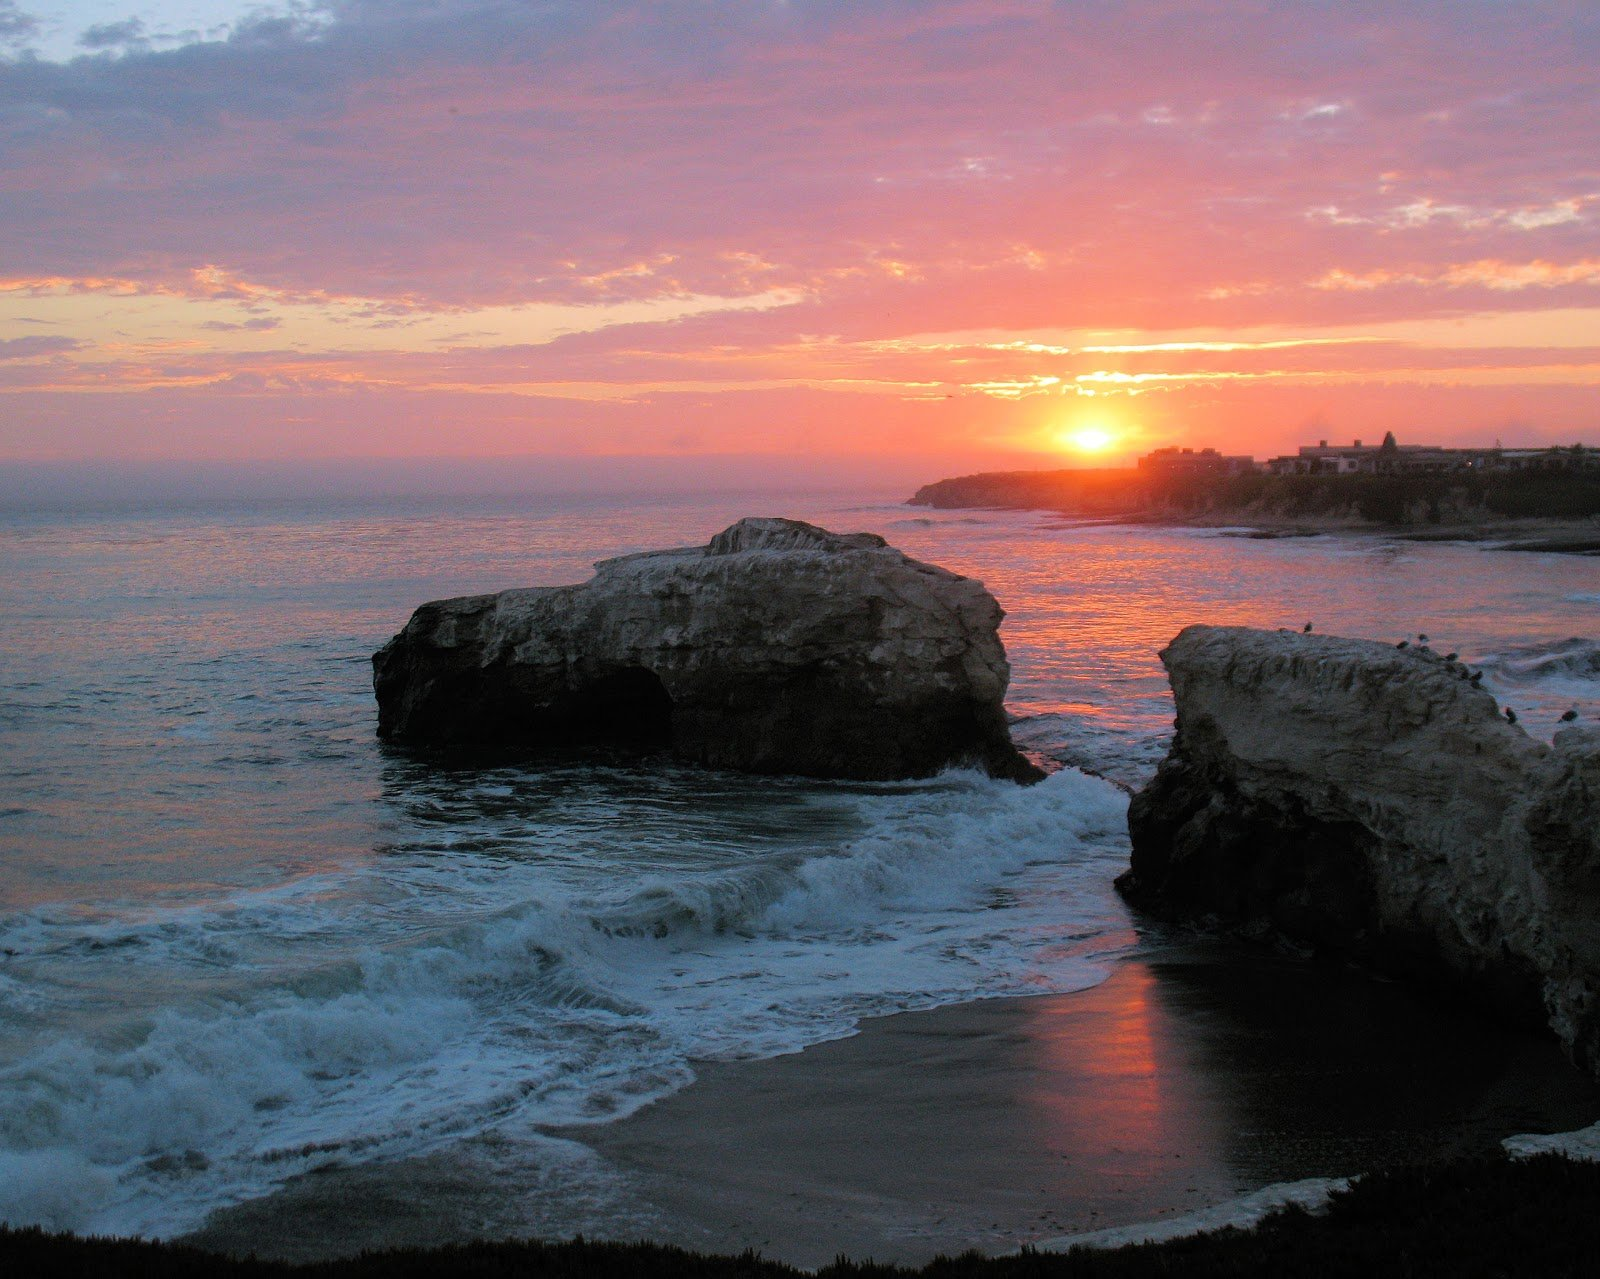 California Beach Beautiful Sunset Wallpaper on this Beach Wallpaper 1600x1279